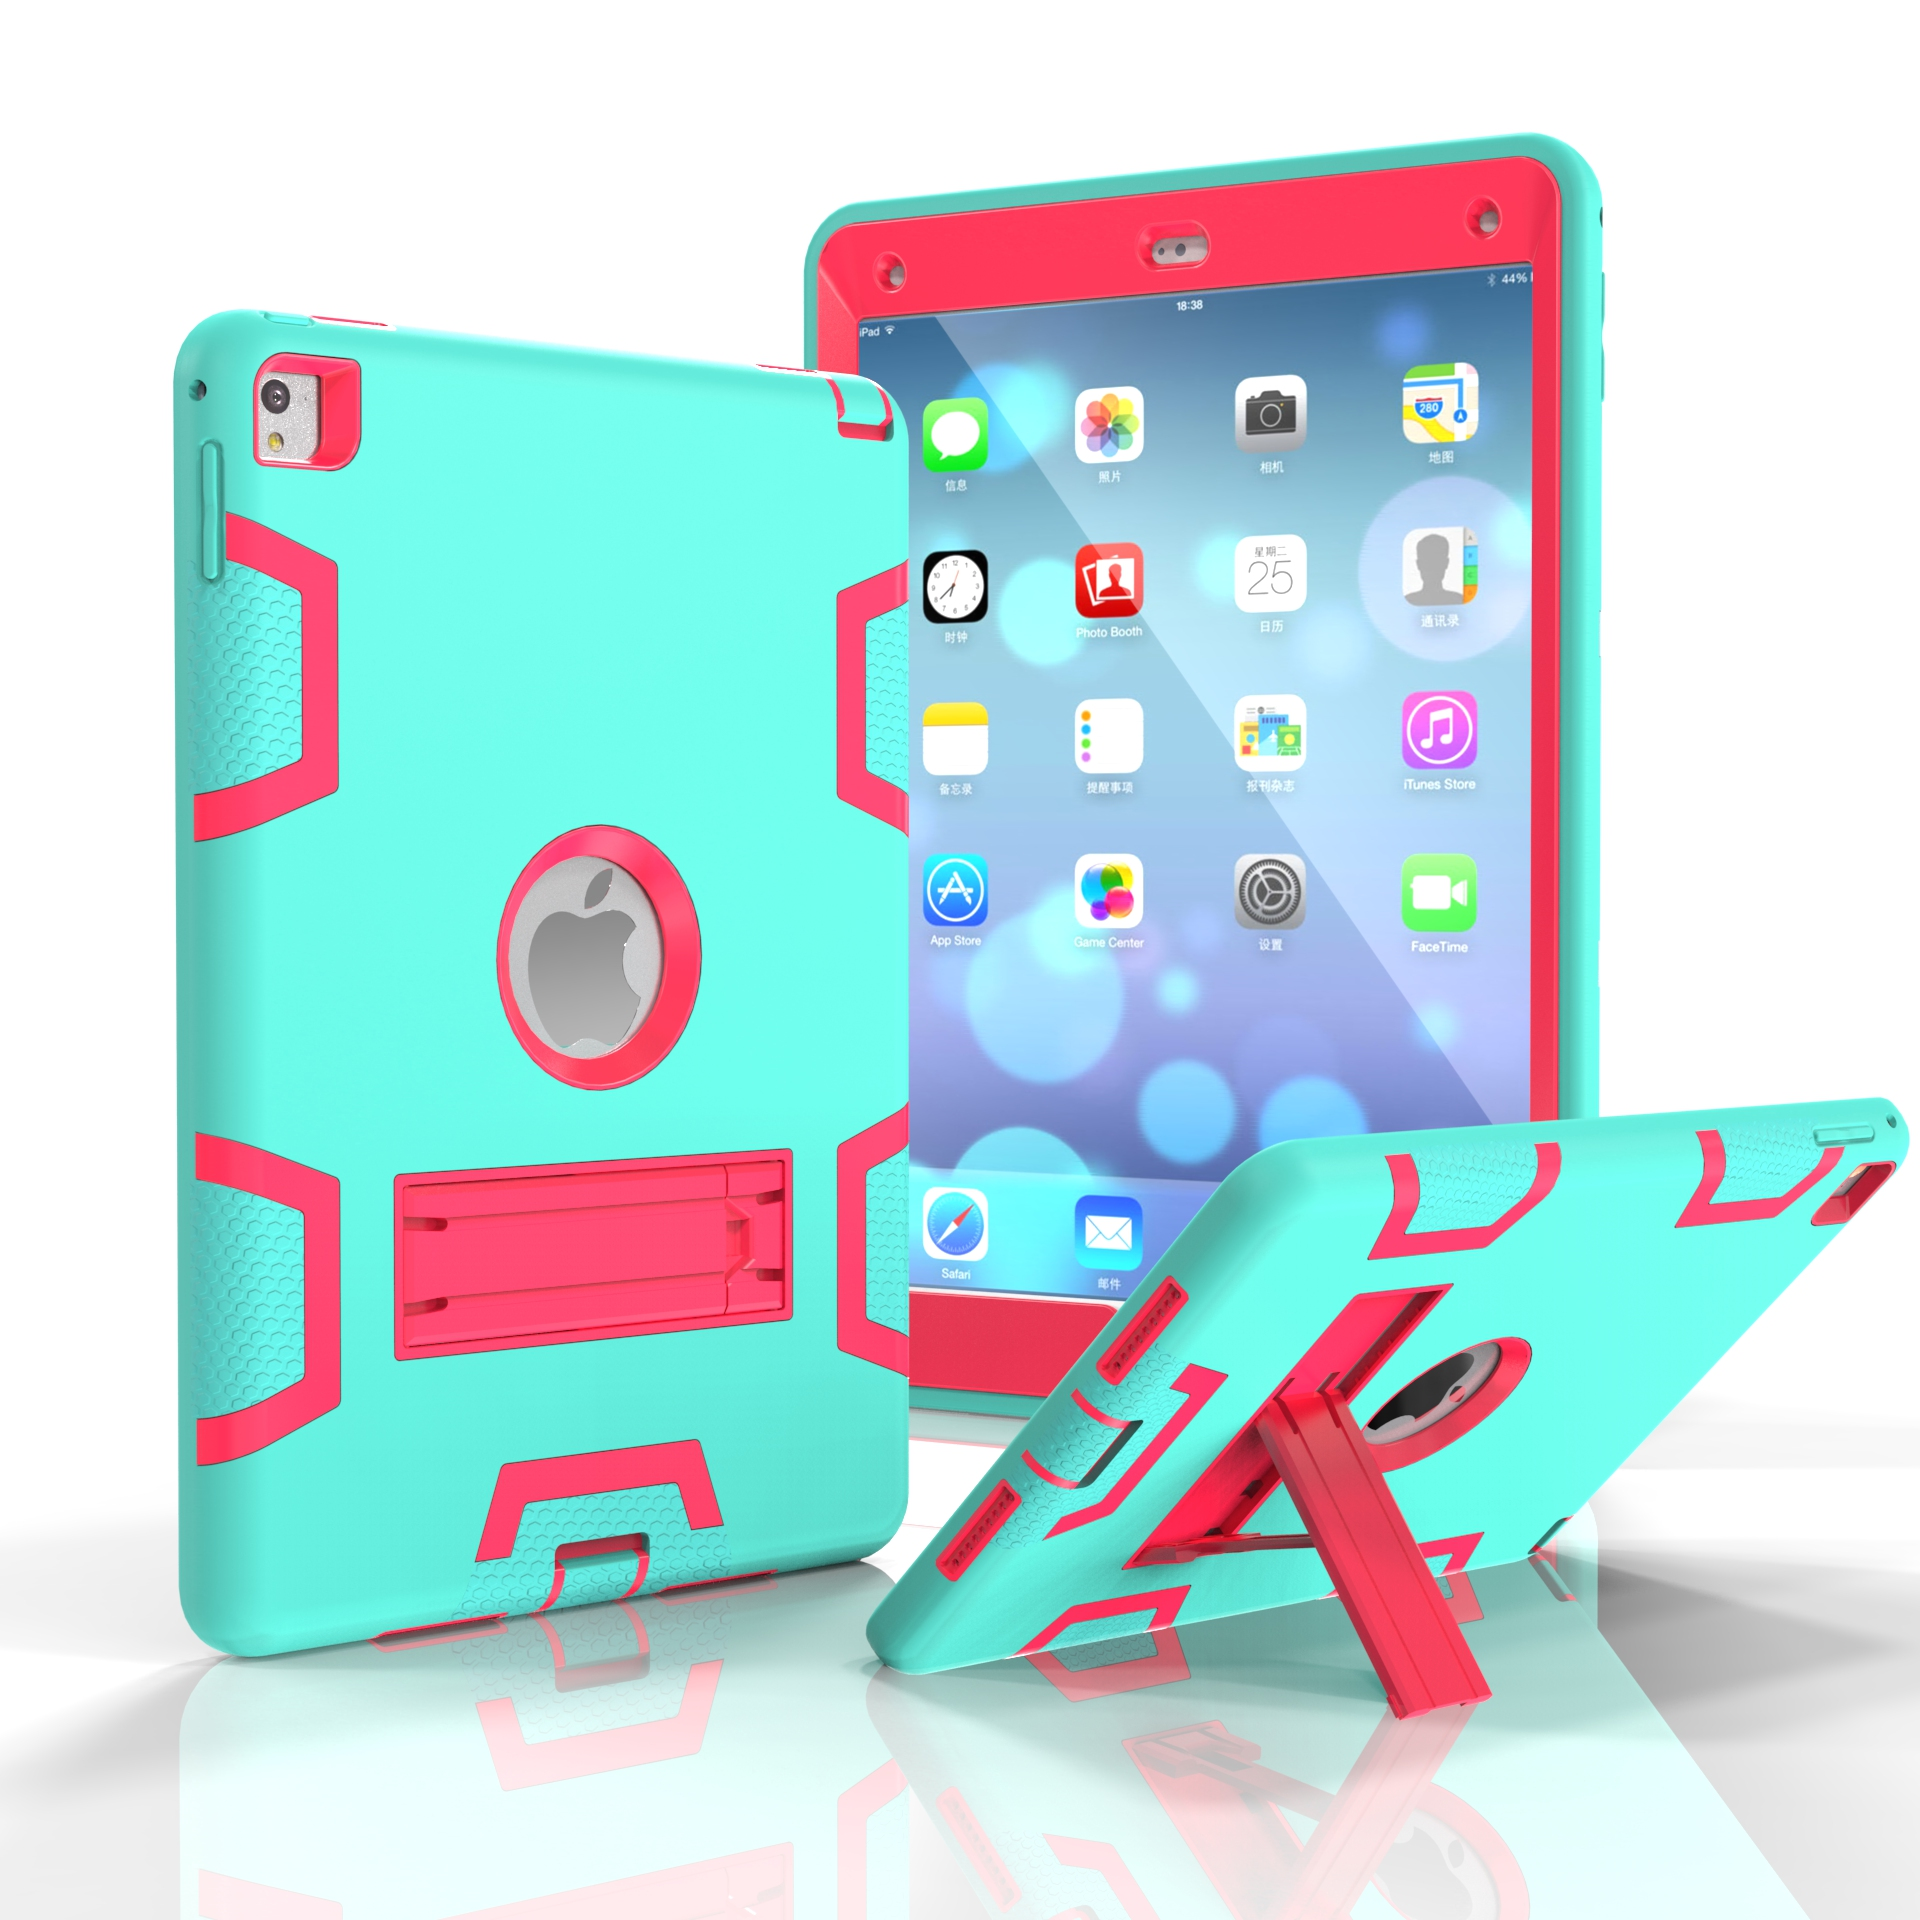 For iPad air2/iPad 6/iPad pro 9.7 2016 PC+ Silicone Hit Color Armor Case Tri-proof Shockproof Dustproof Anti-fall Protective Cover  Mint green + rose red